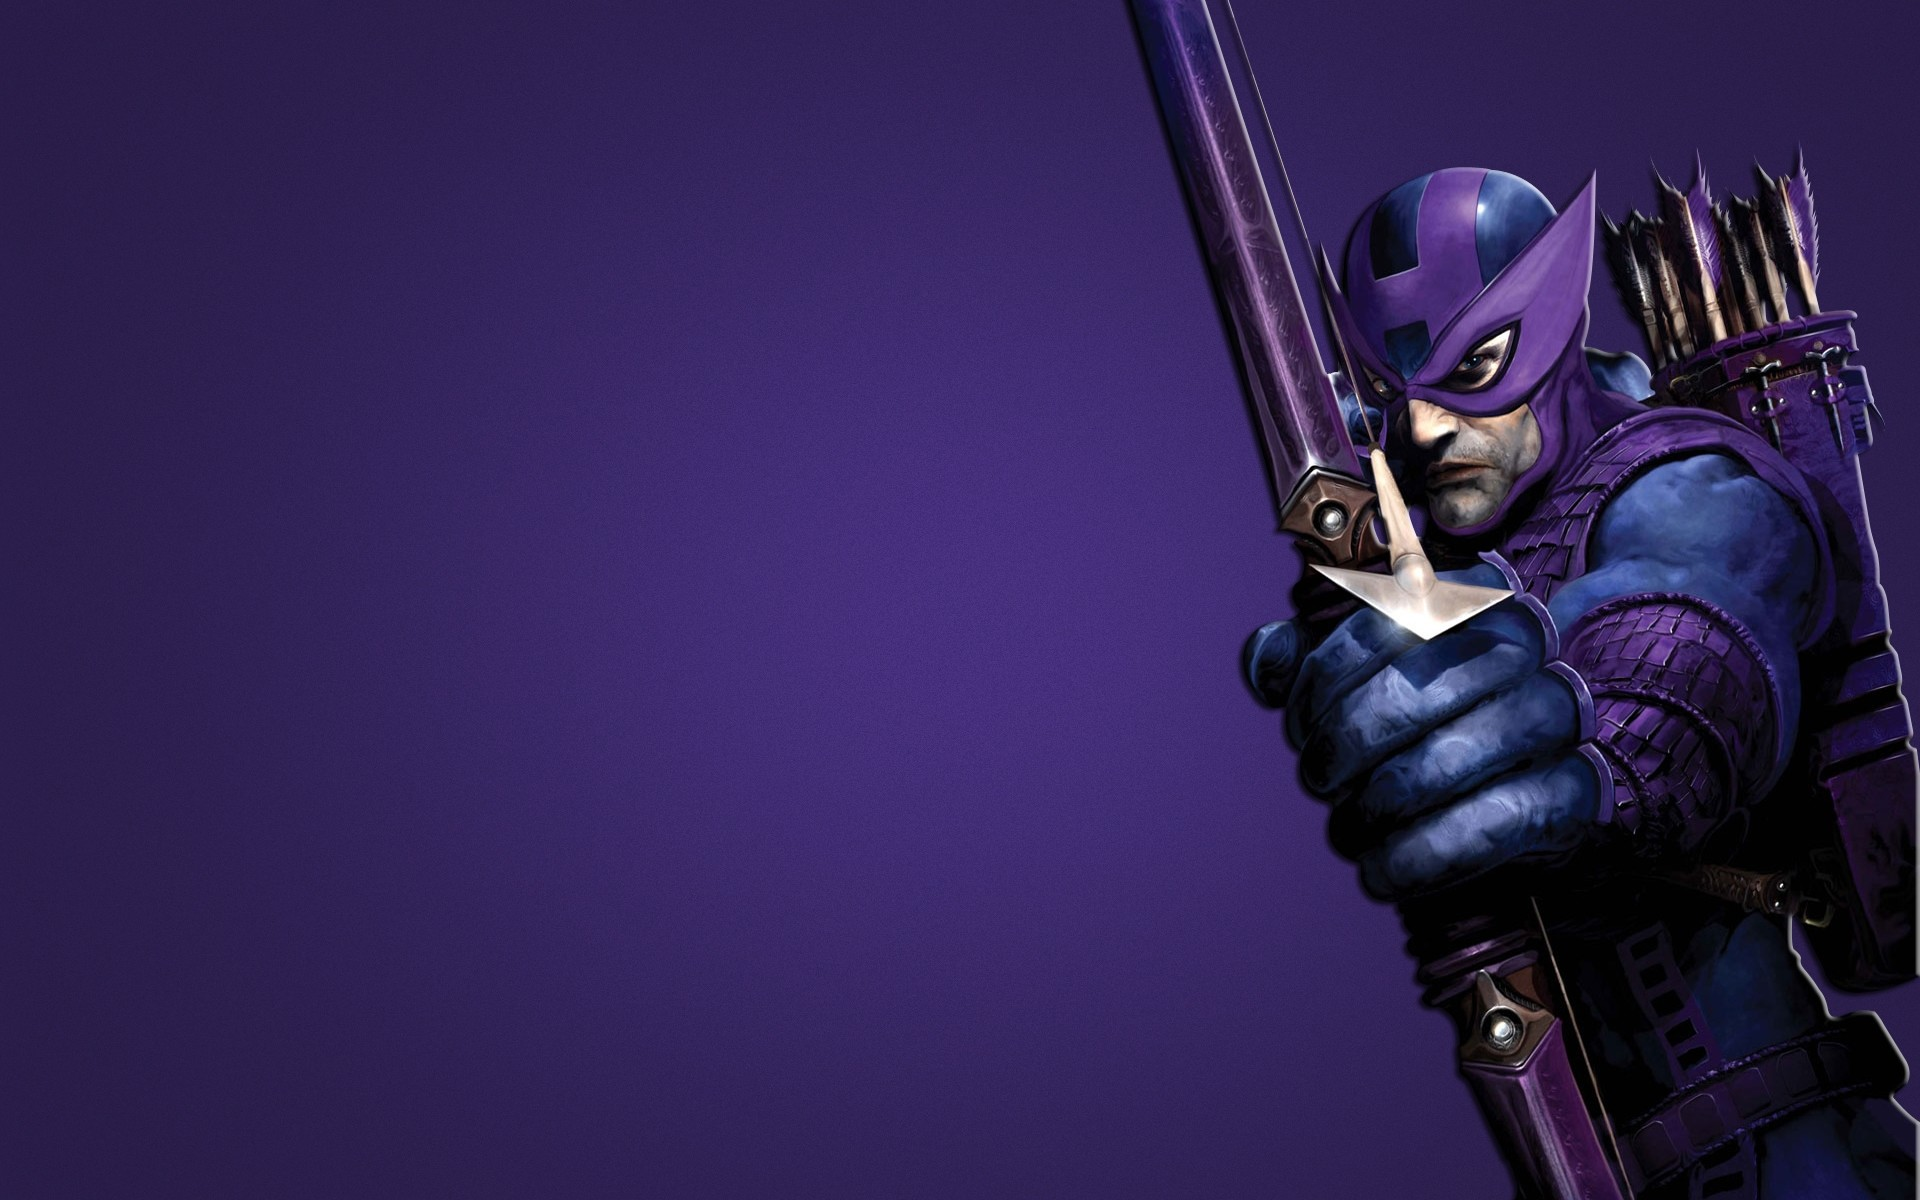 Hawkeye Wallpaper the best 79 images in 2018 1920x1200